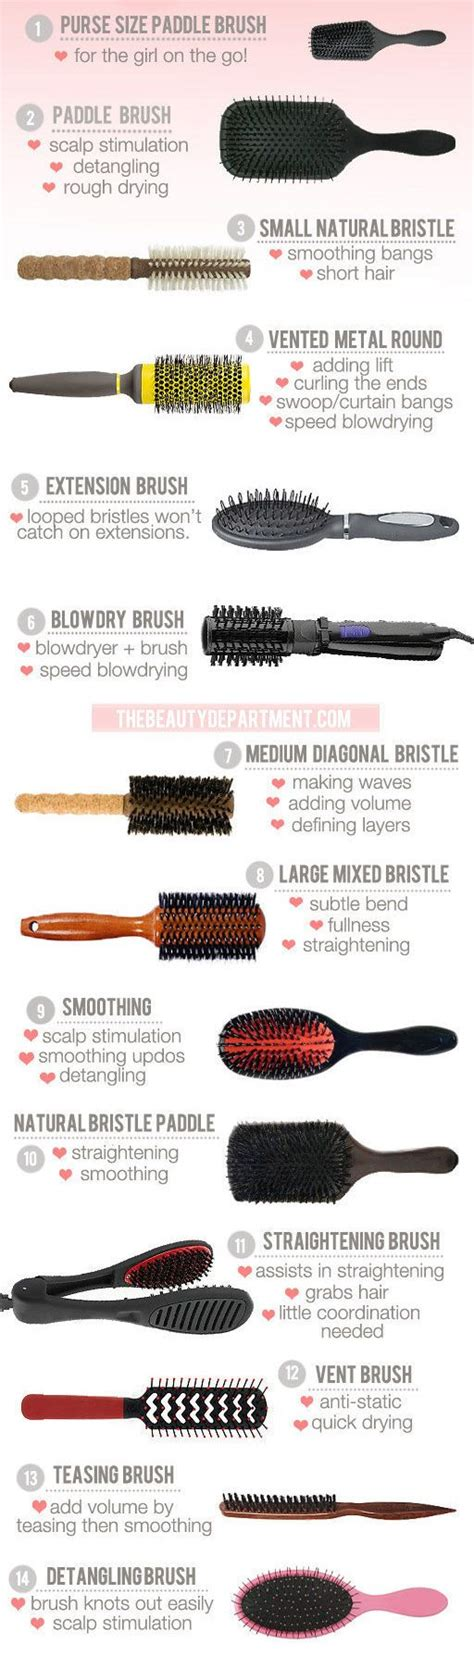 Hair Dryers And Straighteners On Airplanes 1032 best images about all of hair tools and